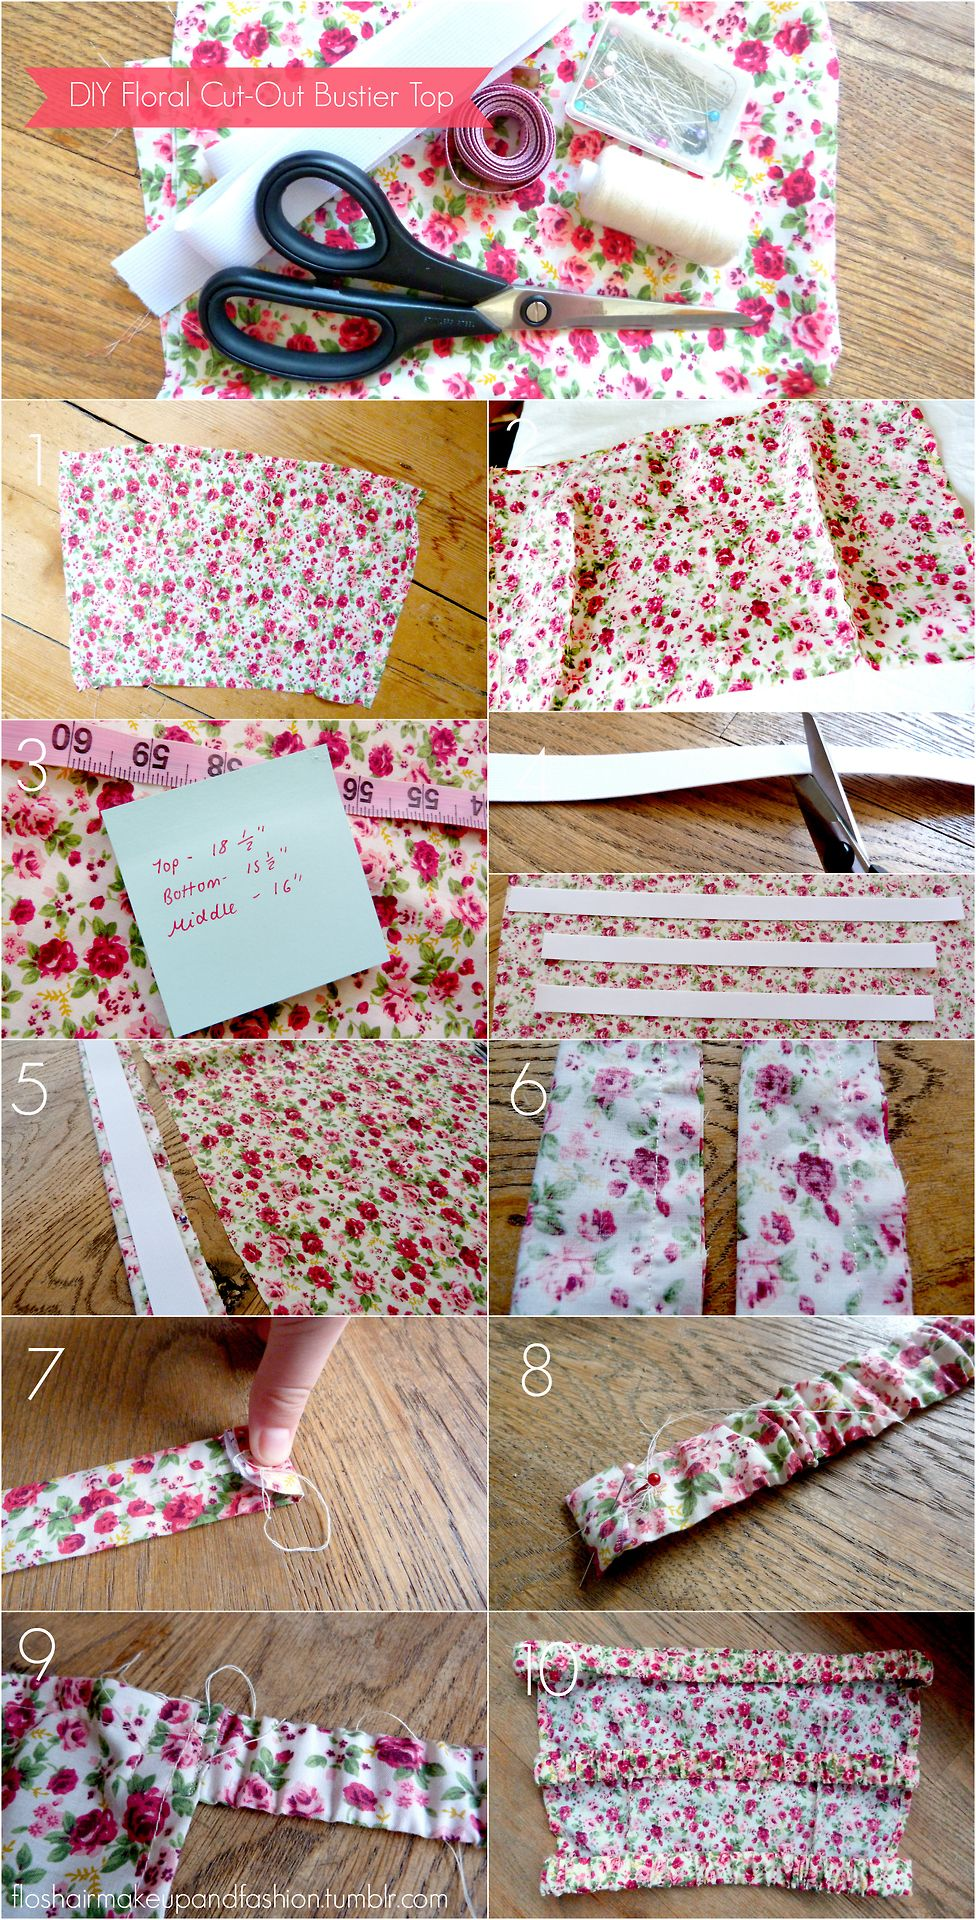 Pin von Katherine Anderson auf Projects to Try | Pinterest ...